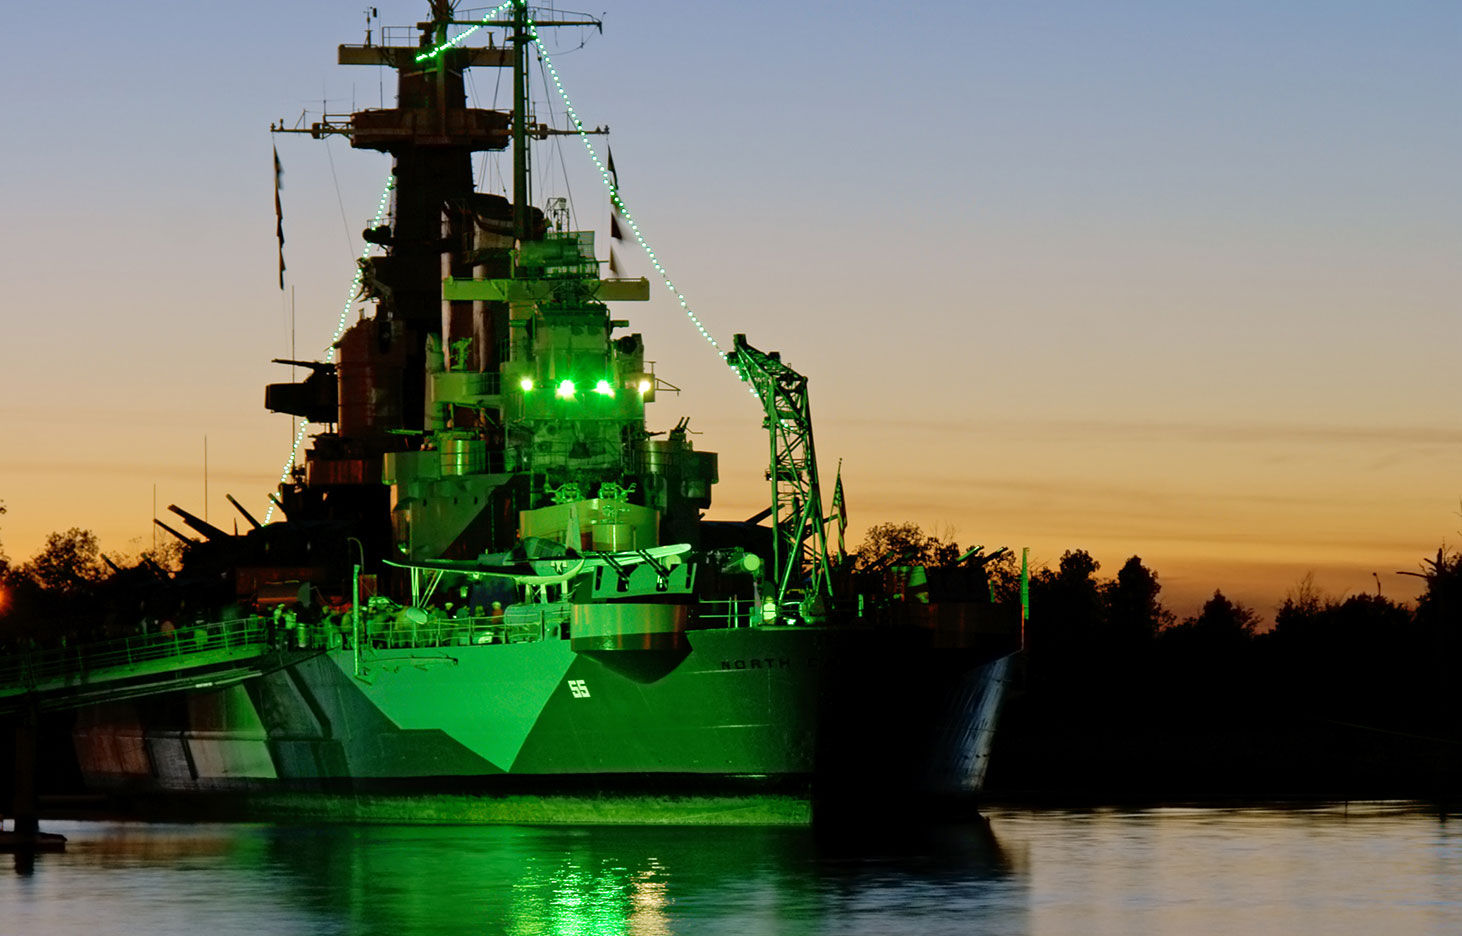 Smiths-markets-security-defence-battleship-iStock-Rose-Marie-Henriksson